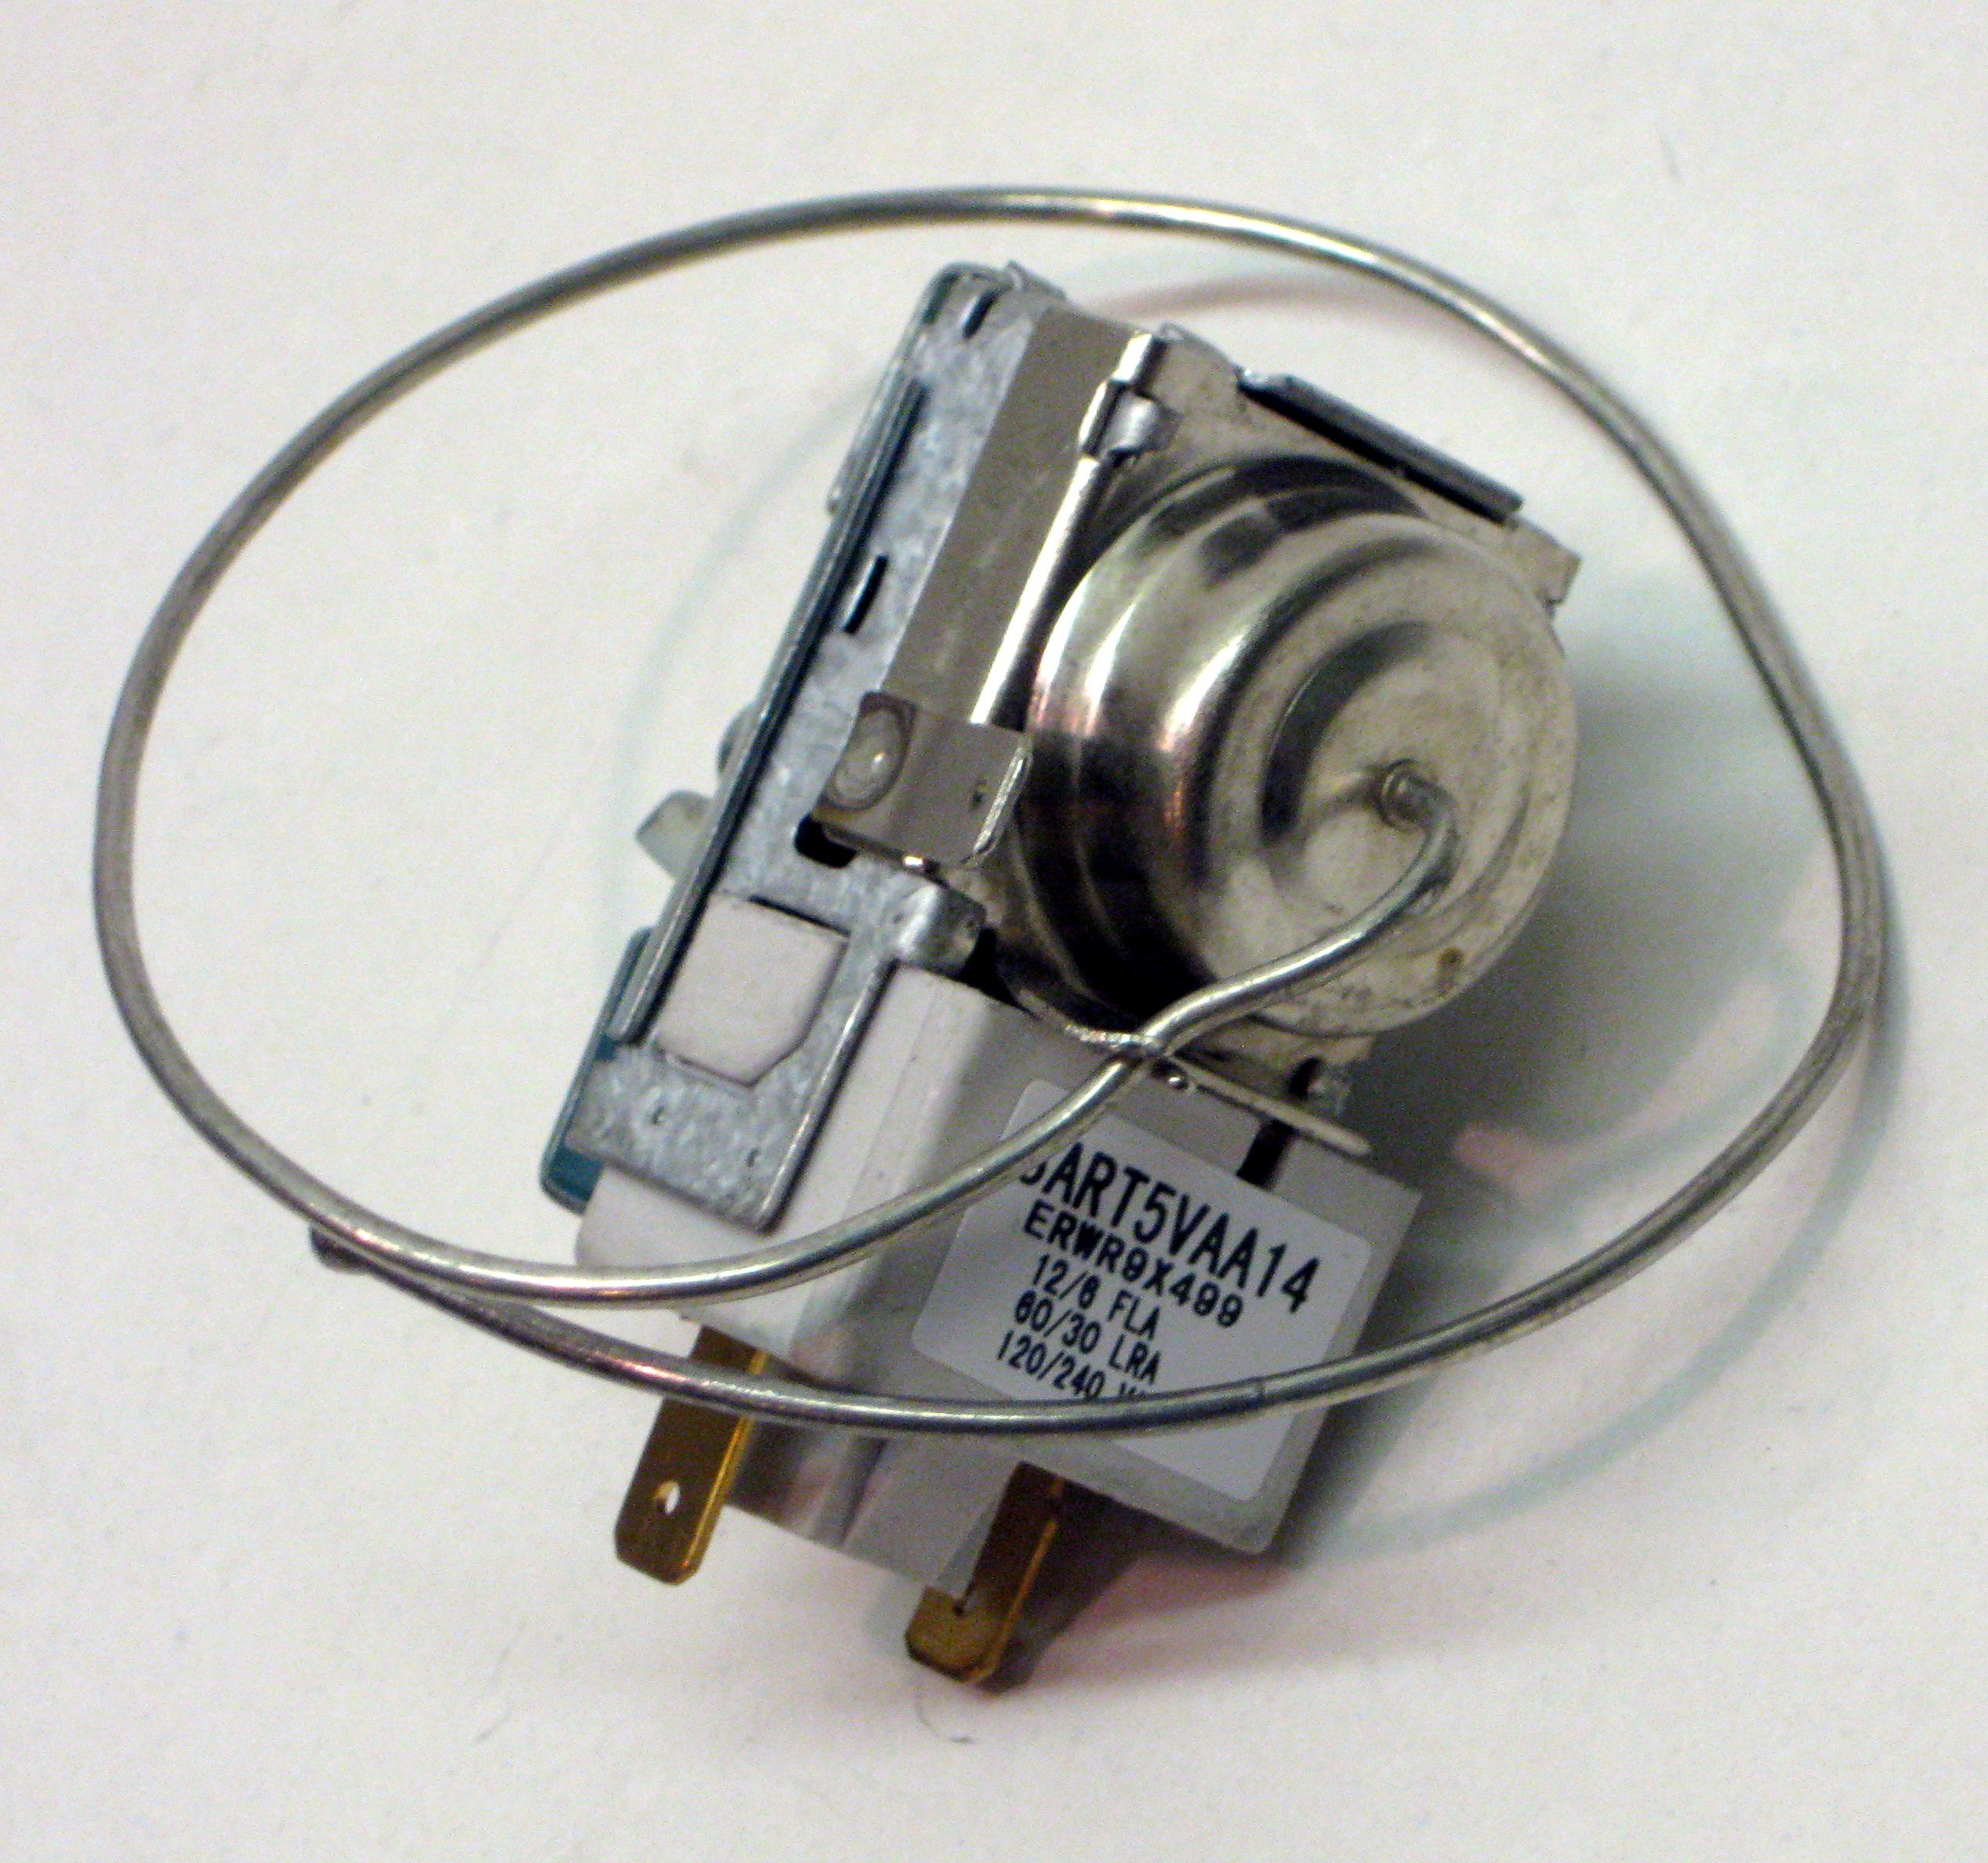 Edgewater Parts Wr9x499 Refrigerator Thermostat Cold Control Compatible With GE Refrigerator by Edgewater Parts